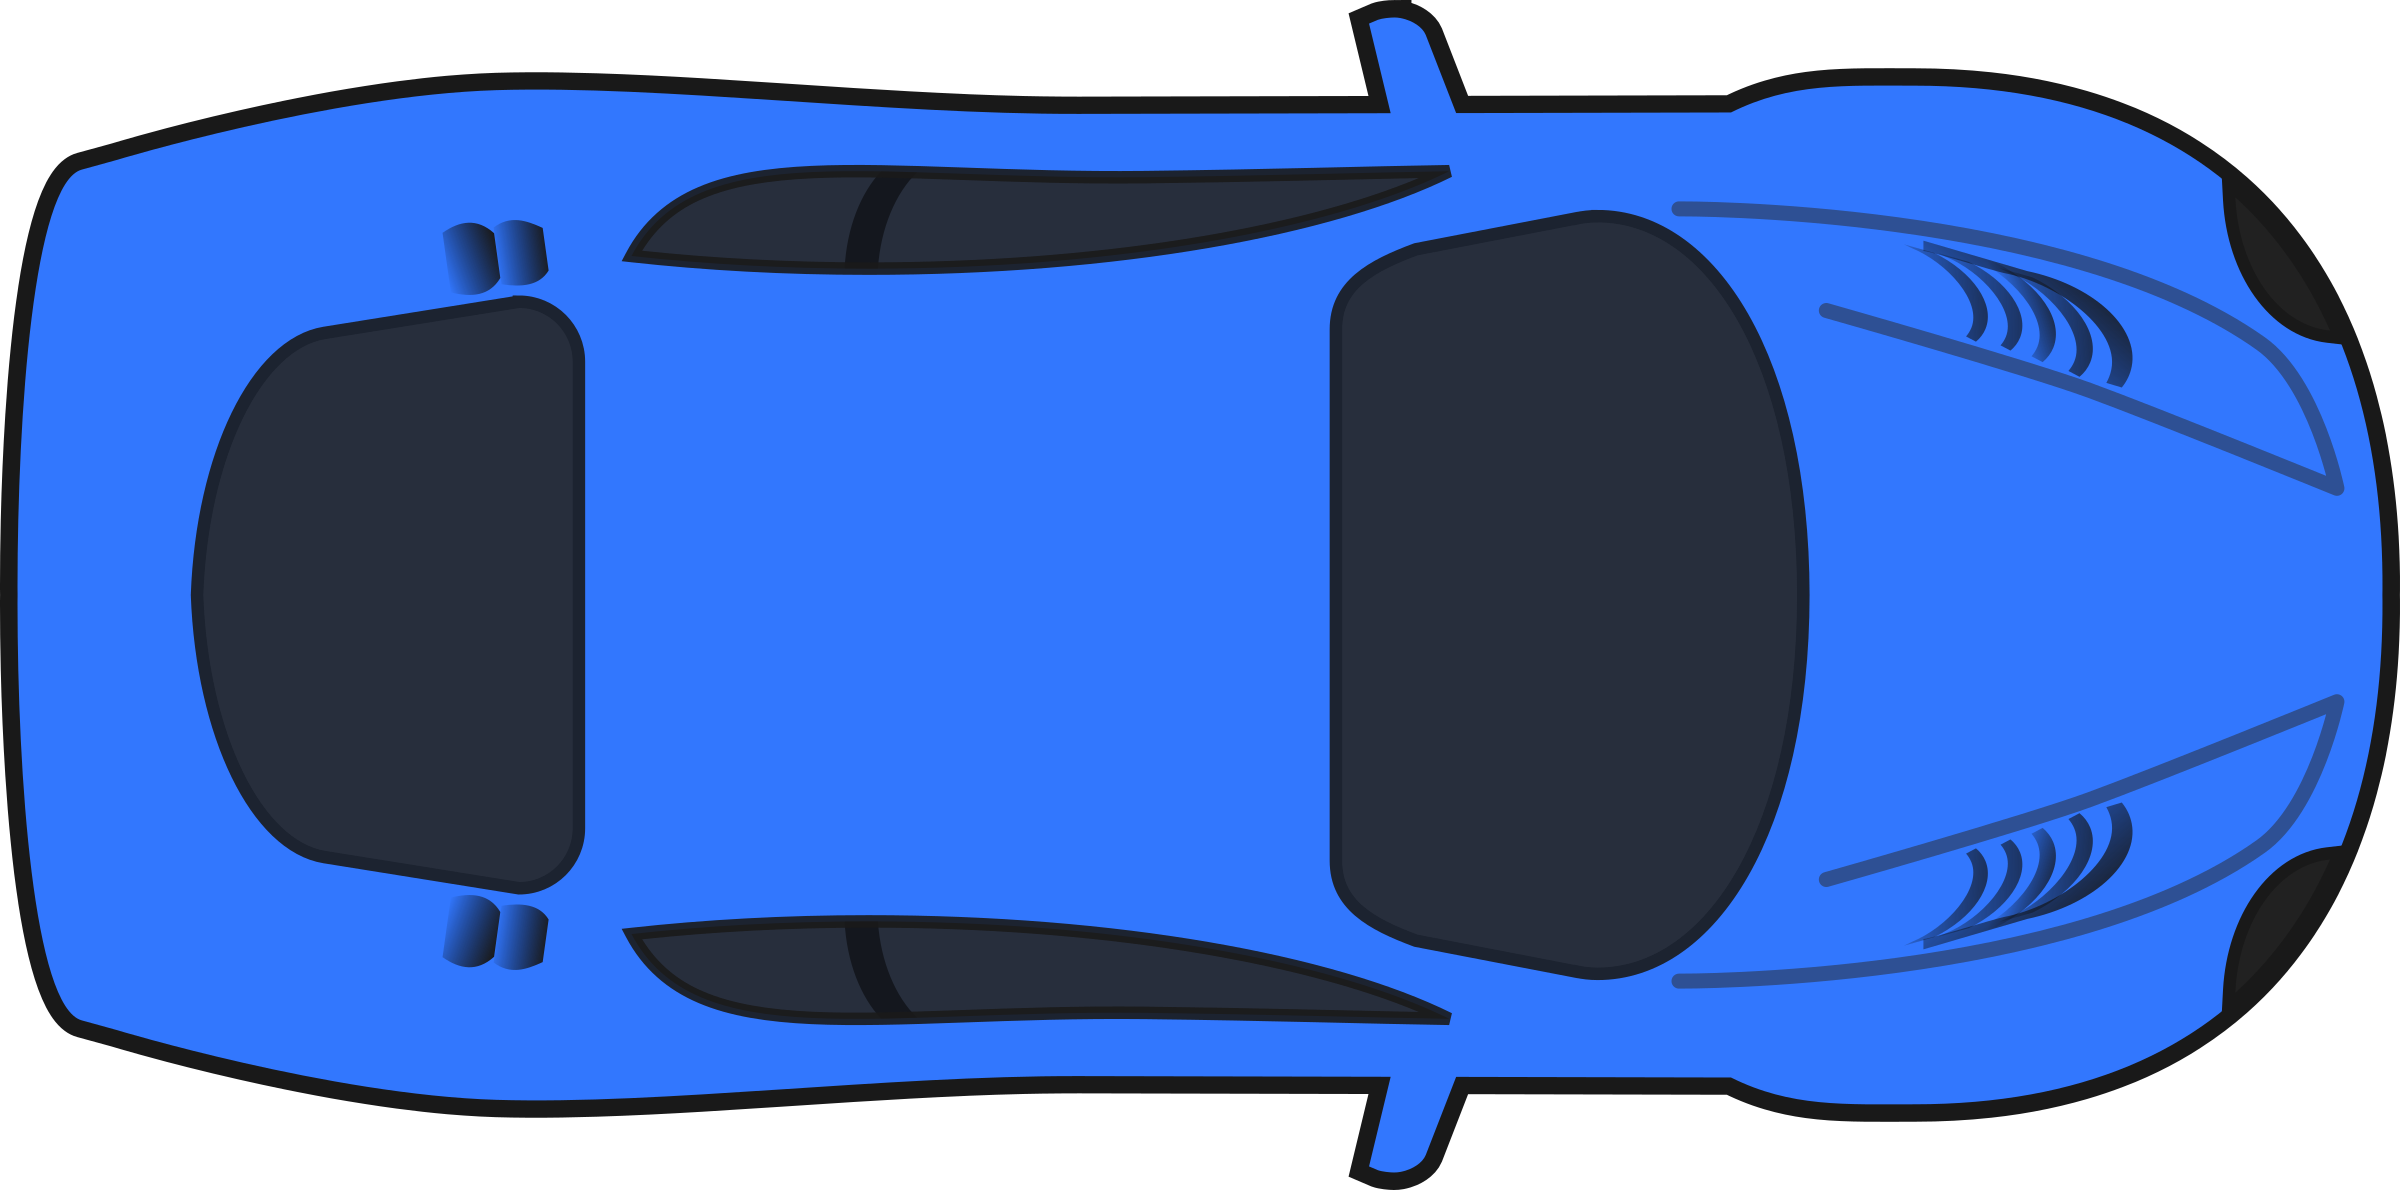 Dark Blue Racing Car (Top View) by qubodup